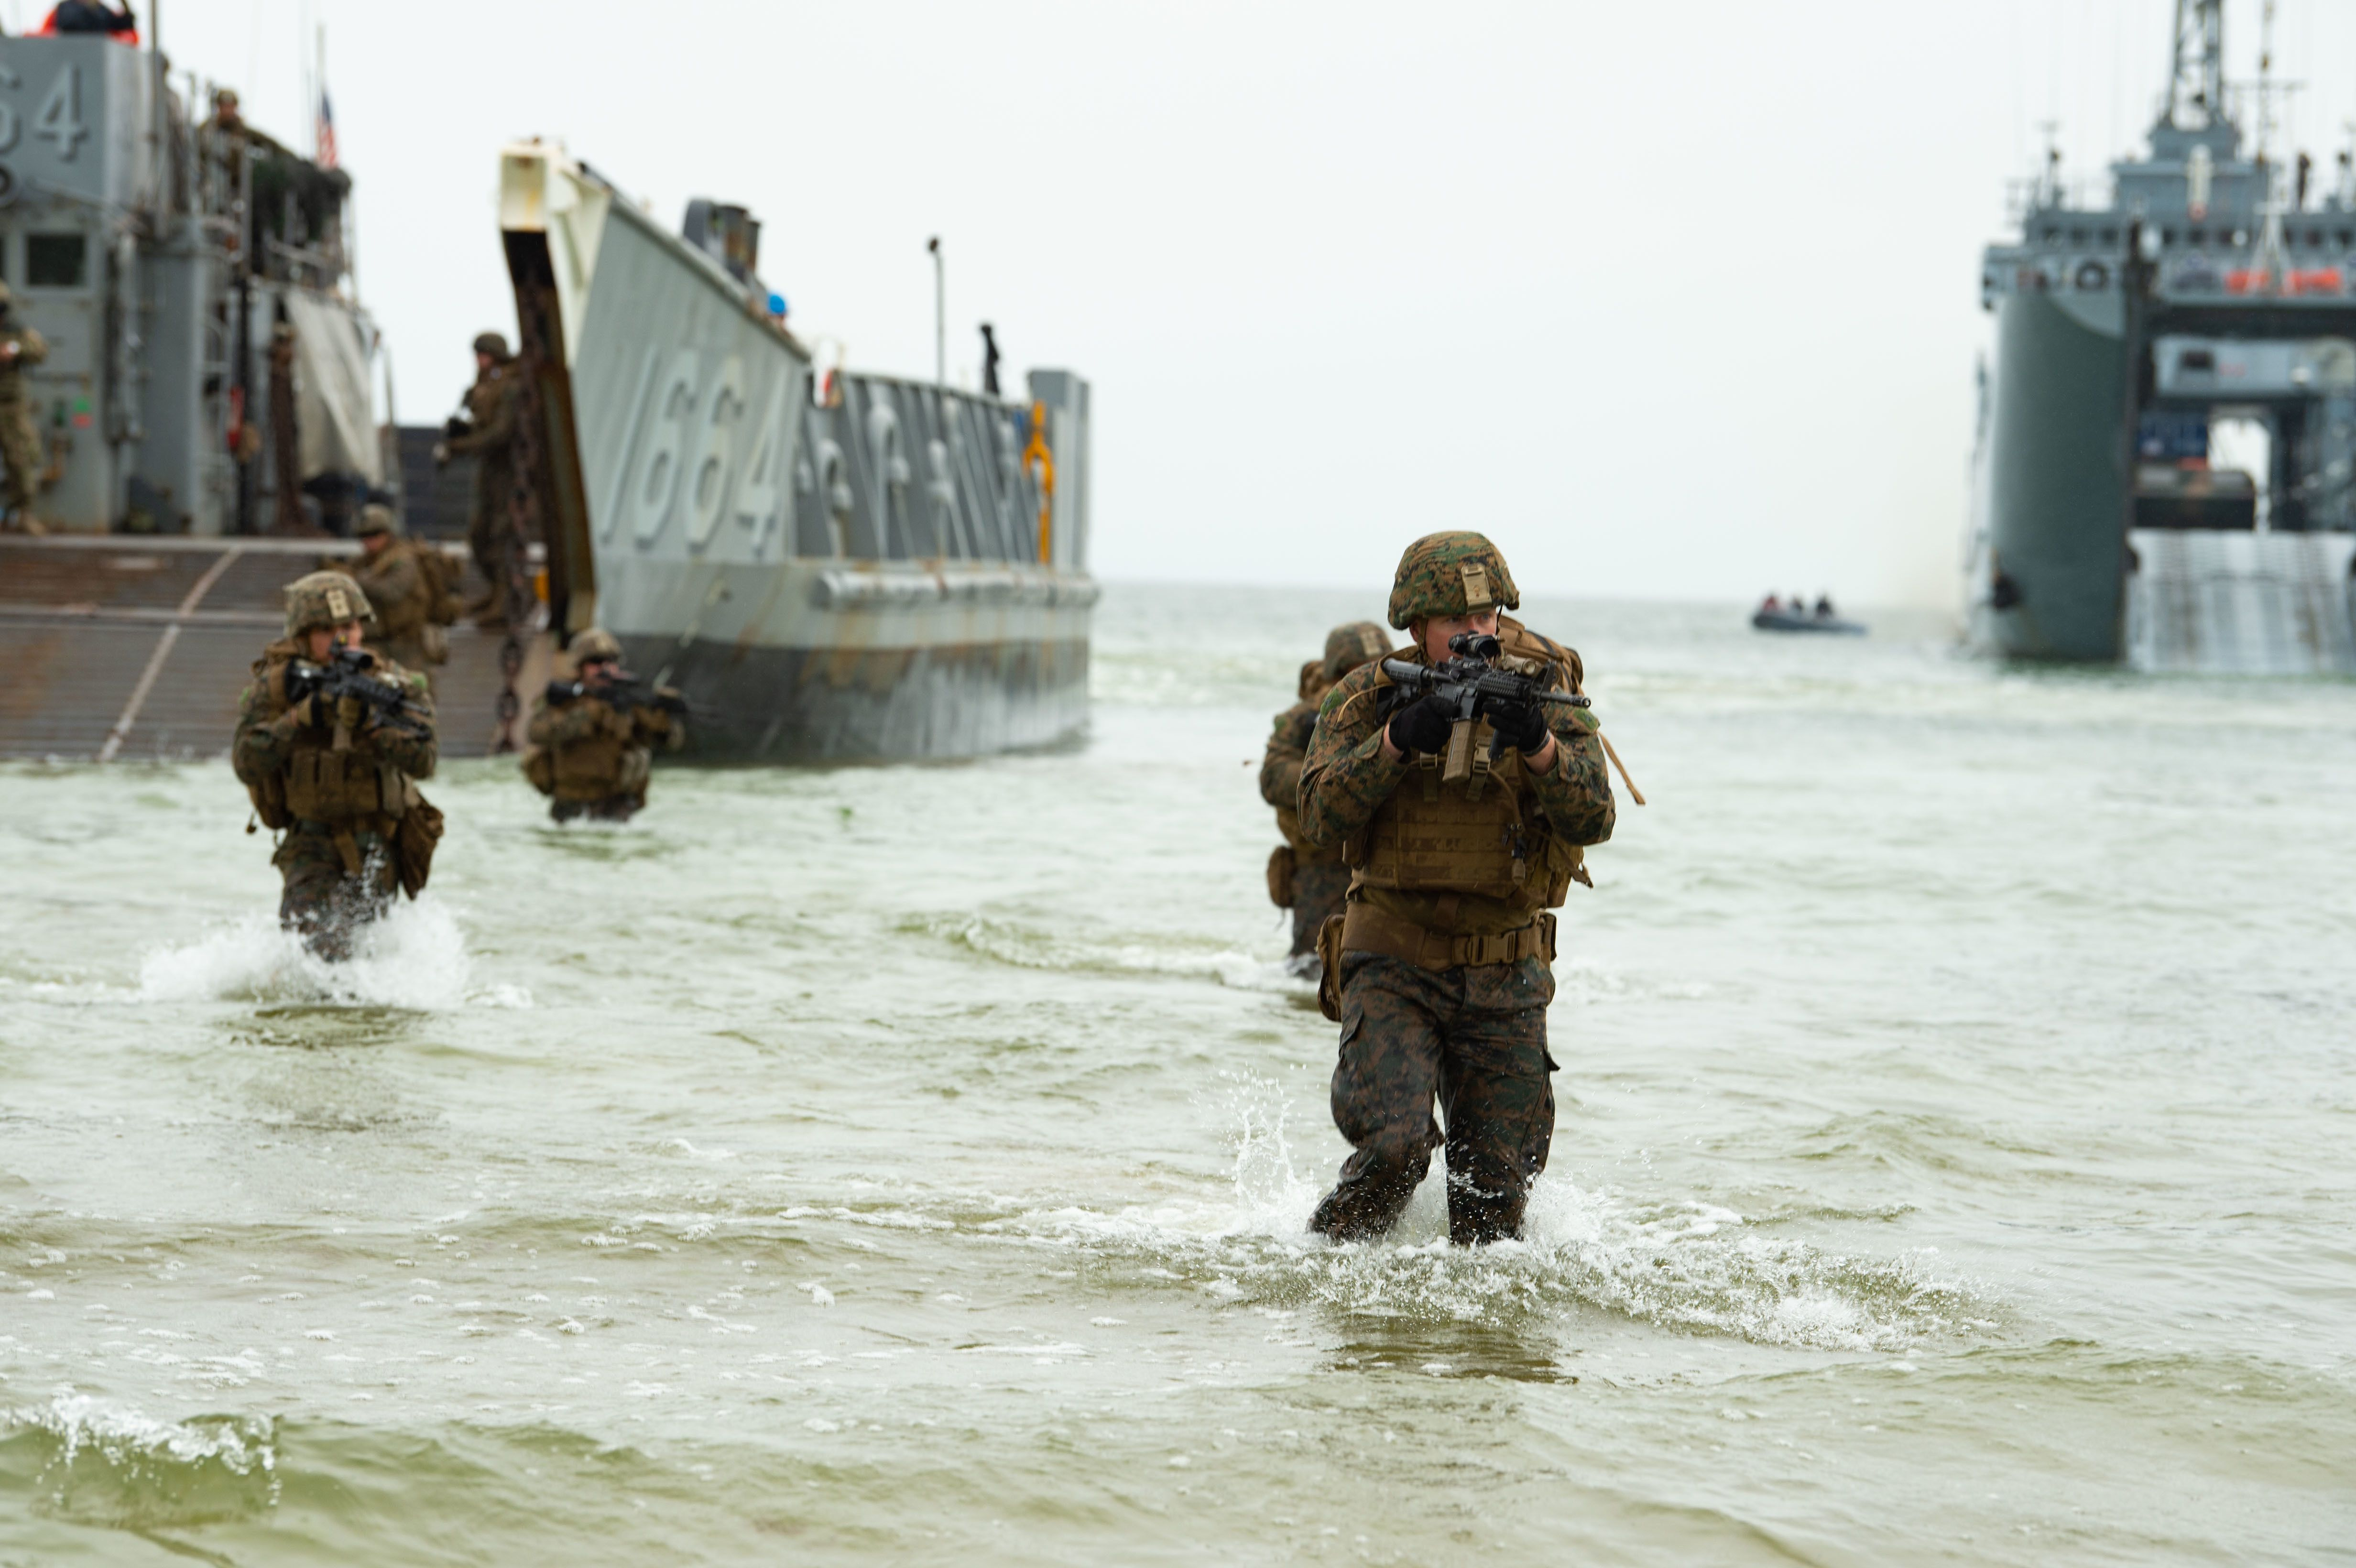 New in 2021: The Corps gets a new unit ― the Marine littoral regiment